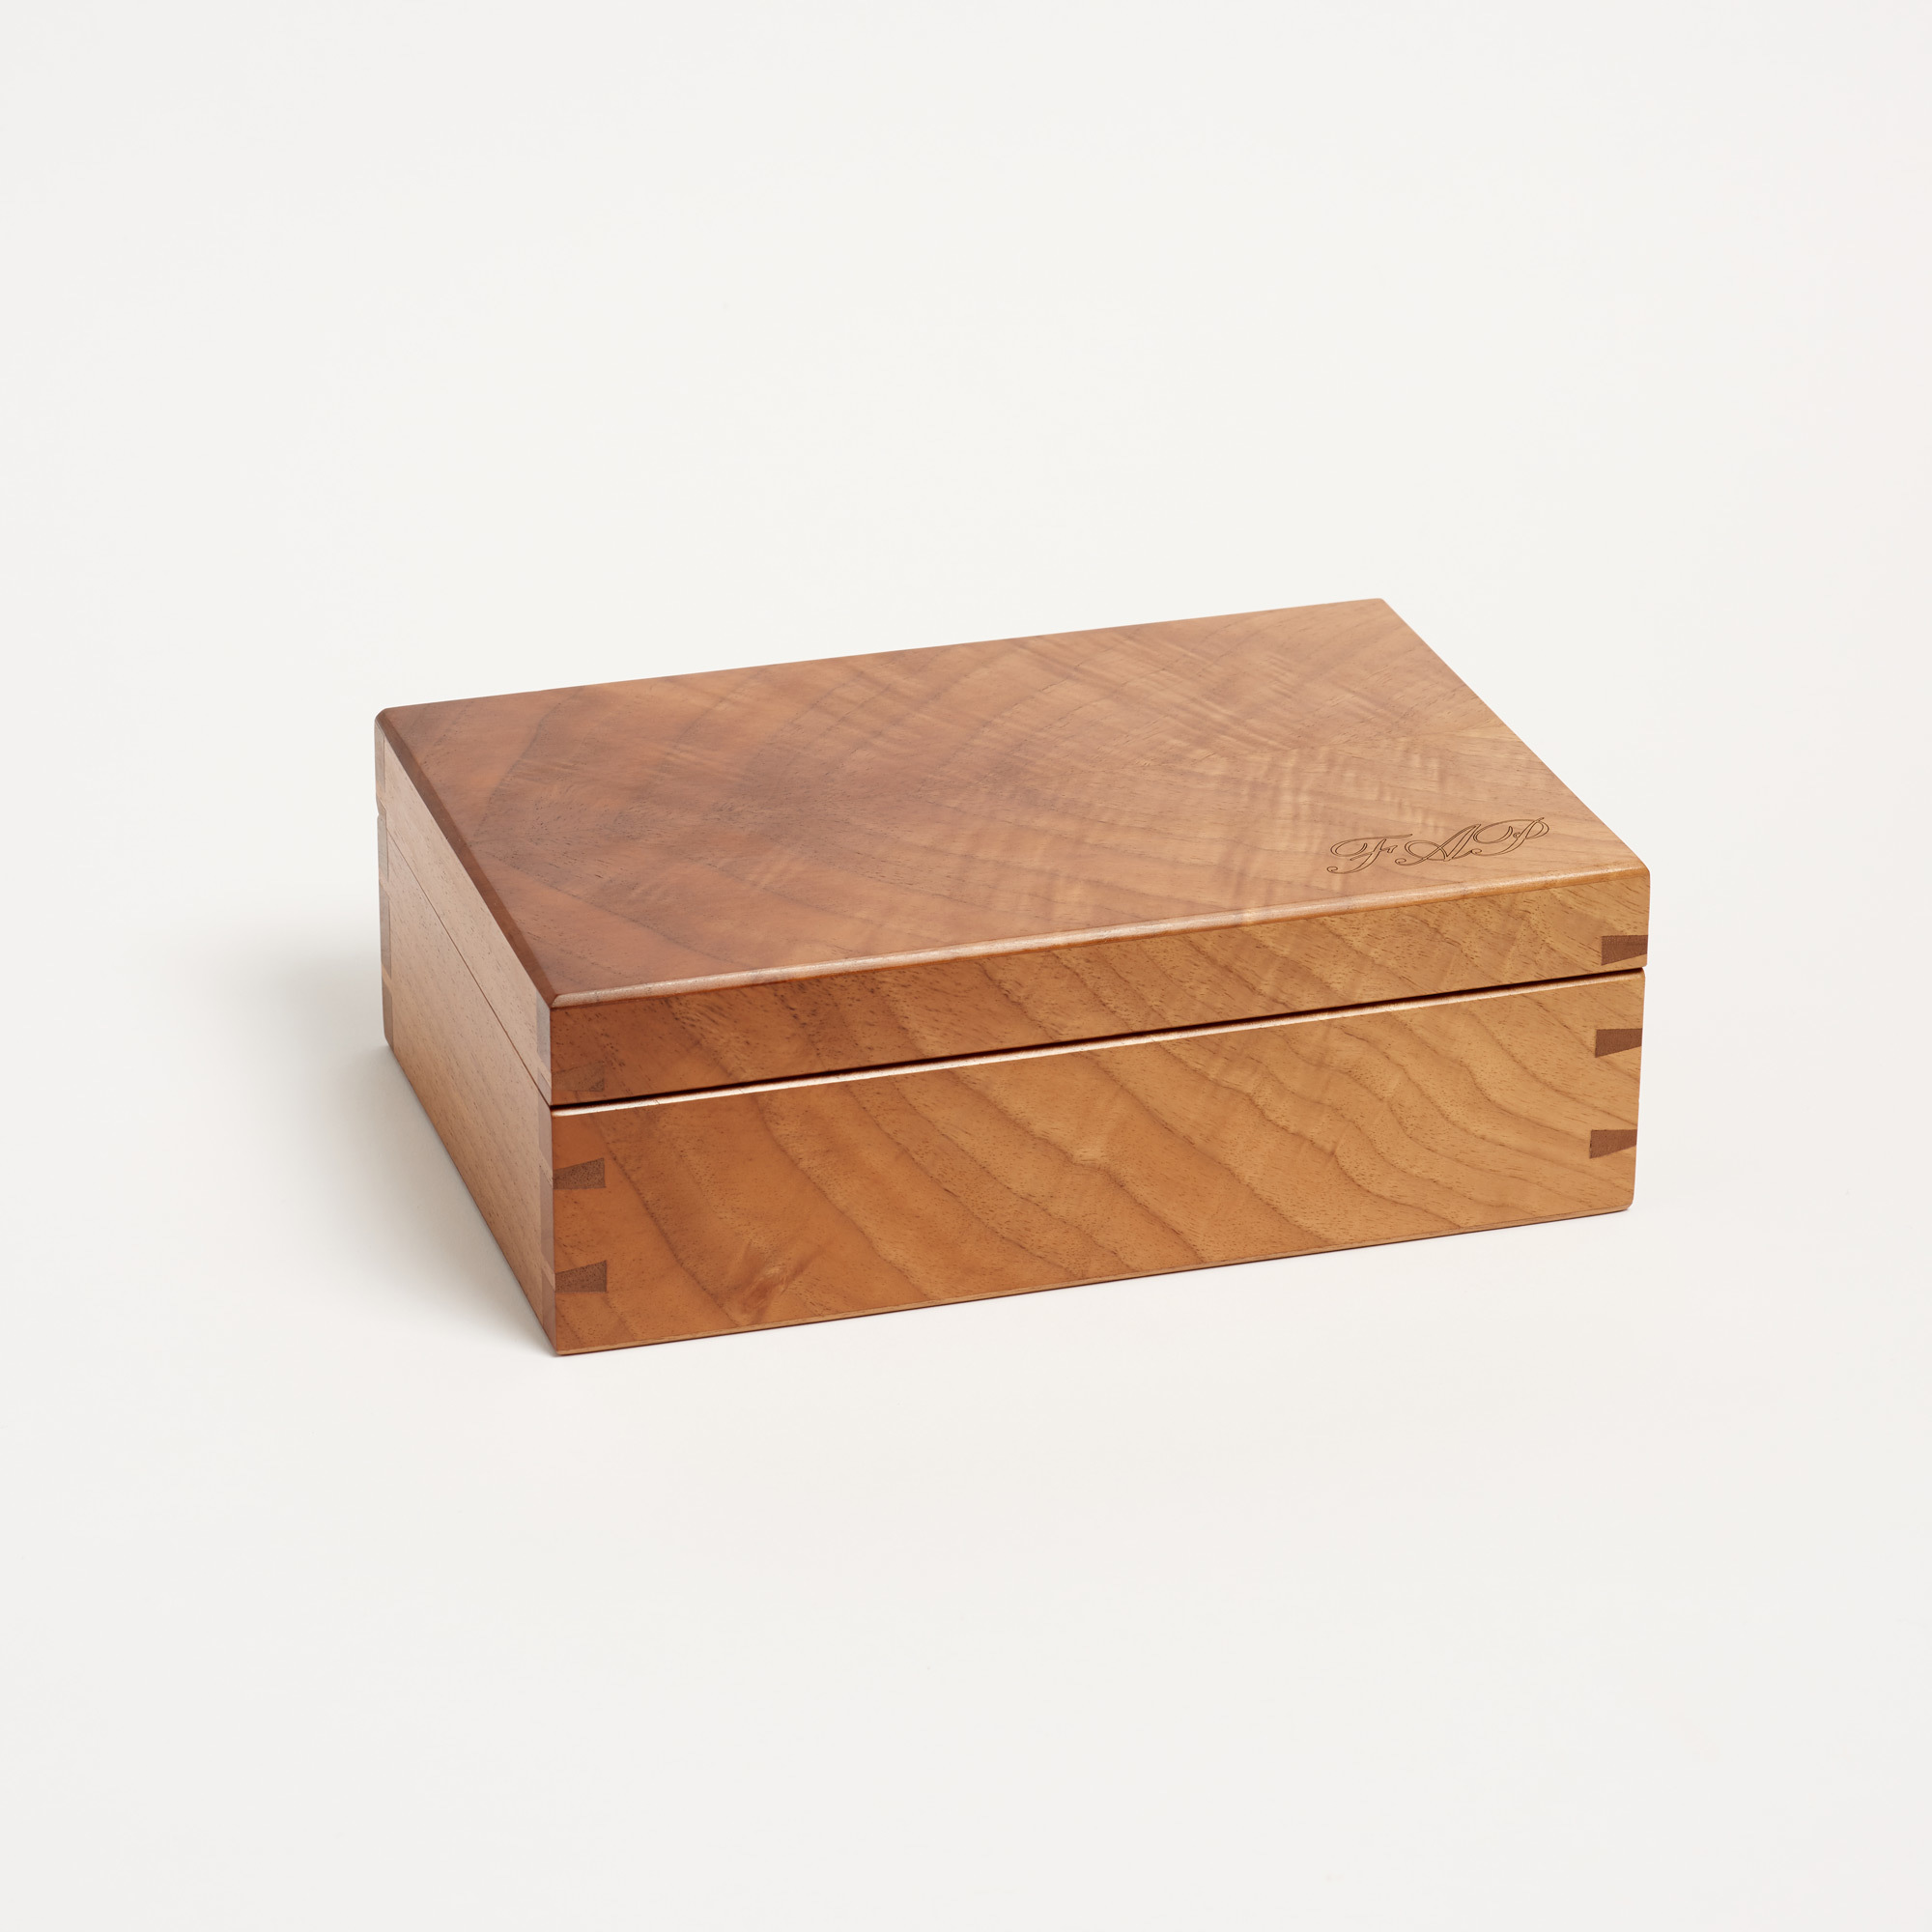 English Walnut Keepsake Box English Walnut Keepsake Box